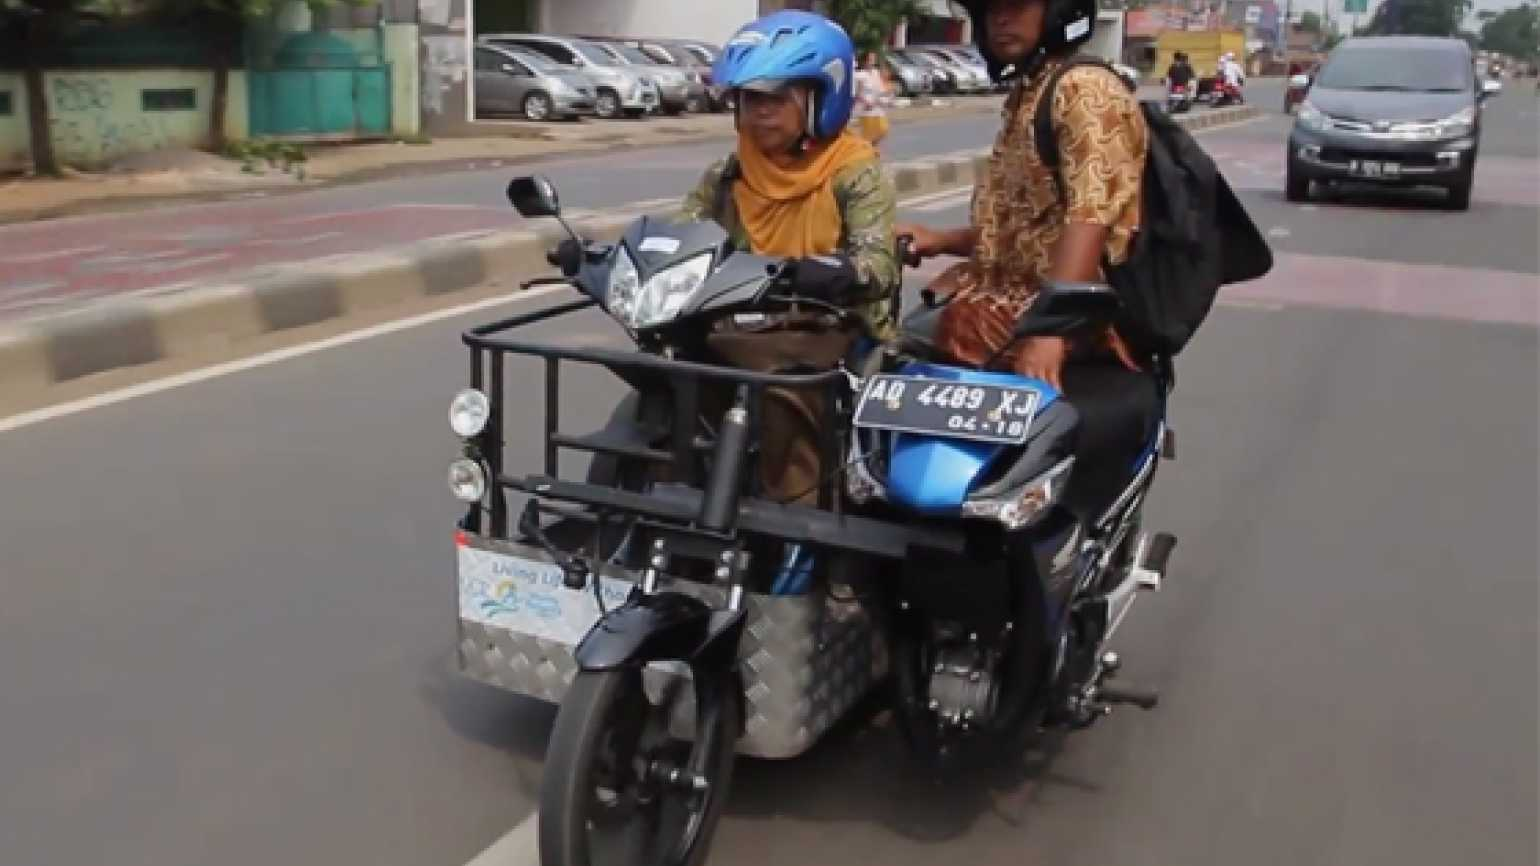 Paraplegic Sri Lestari and her brother ride in a specially designed motorcycle.